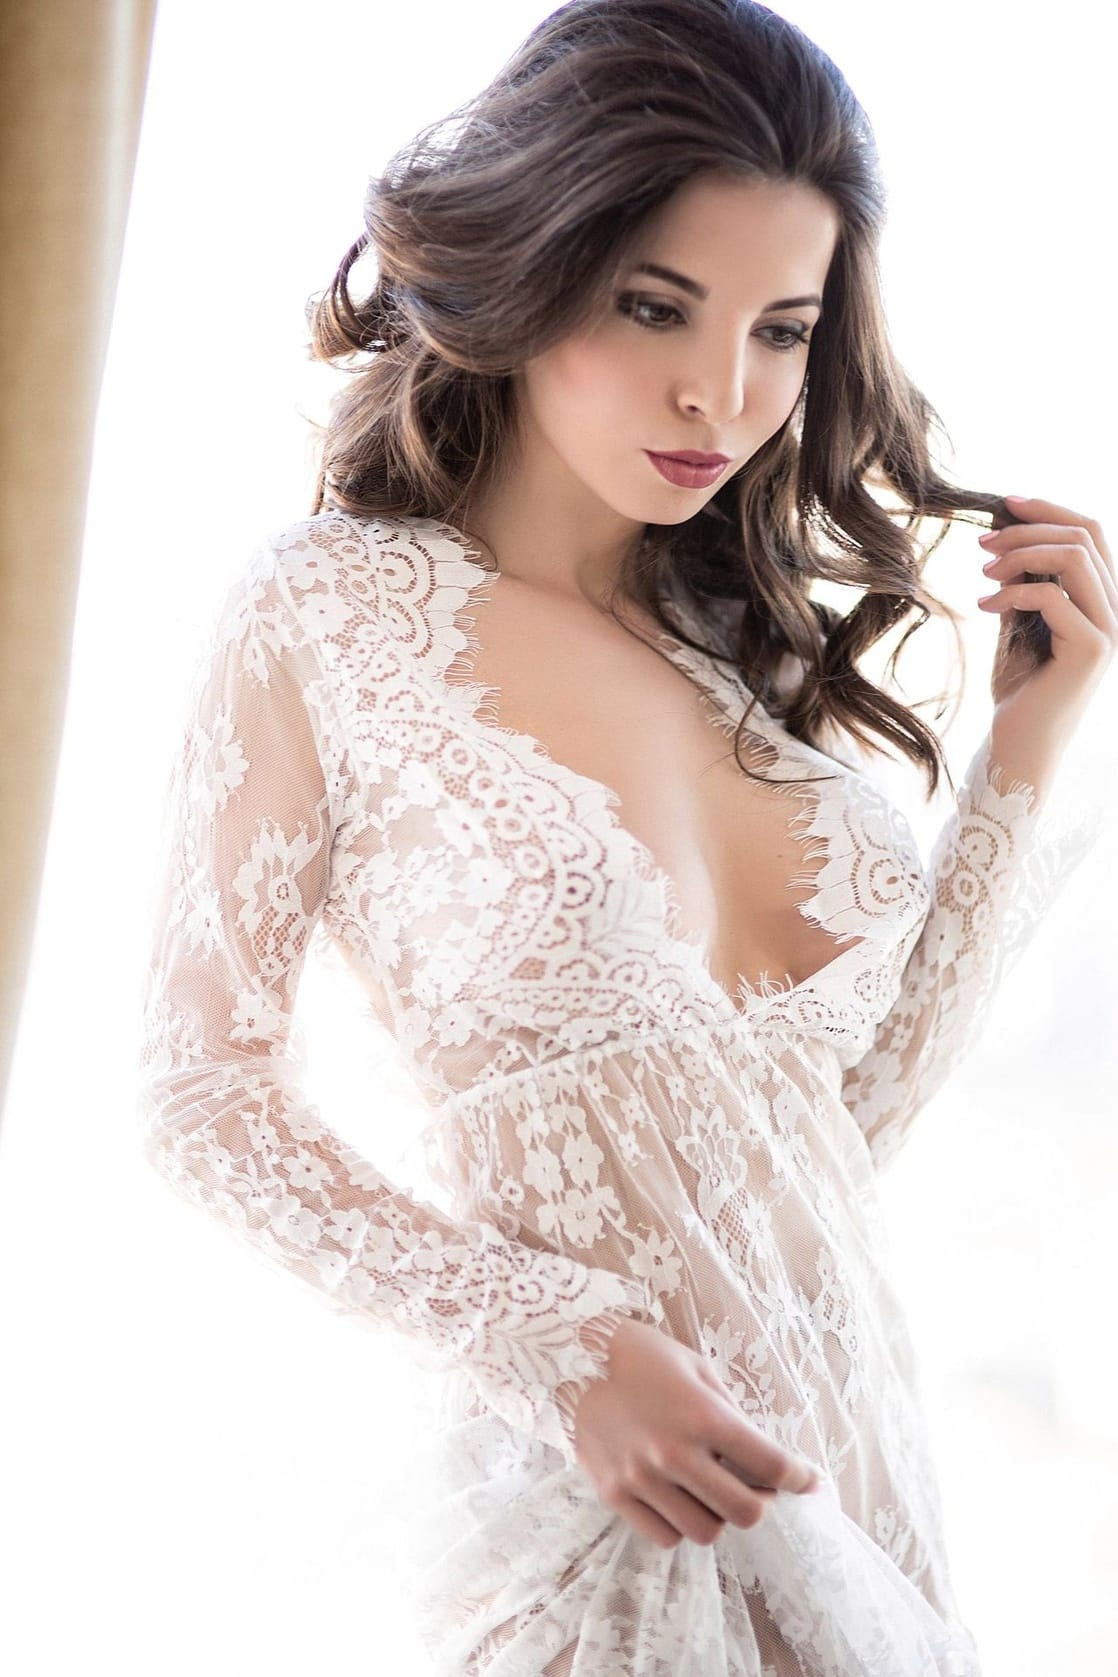 Celebrites Karina Avakyan nudes (51 foto and video), Tits, Cleavage, Twitter, see through 2018